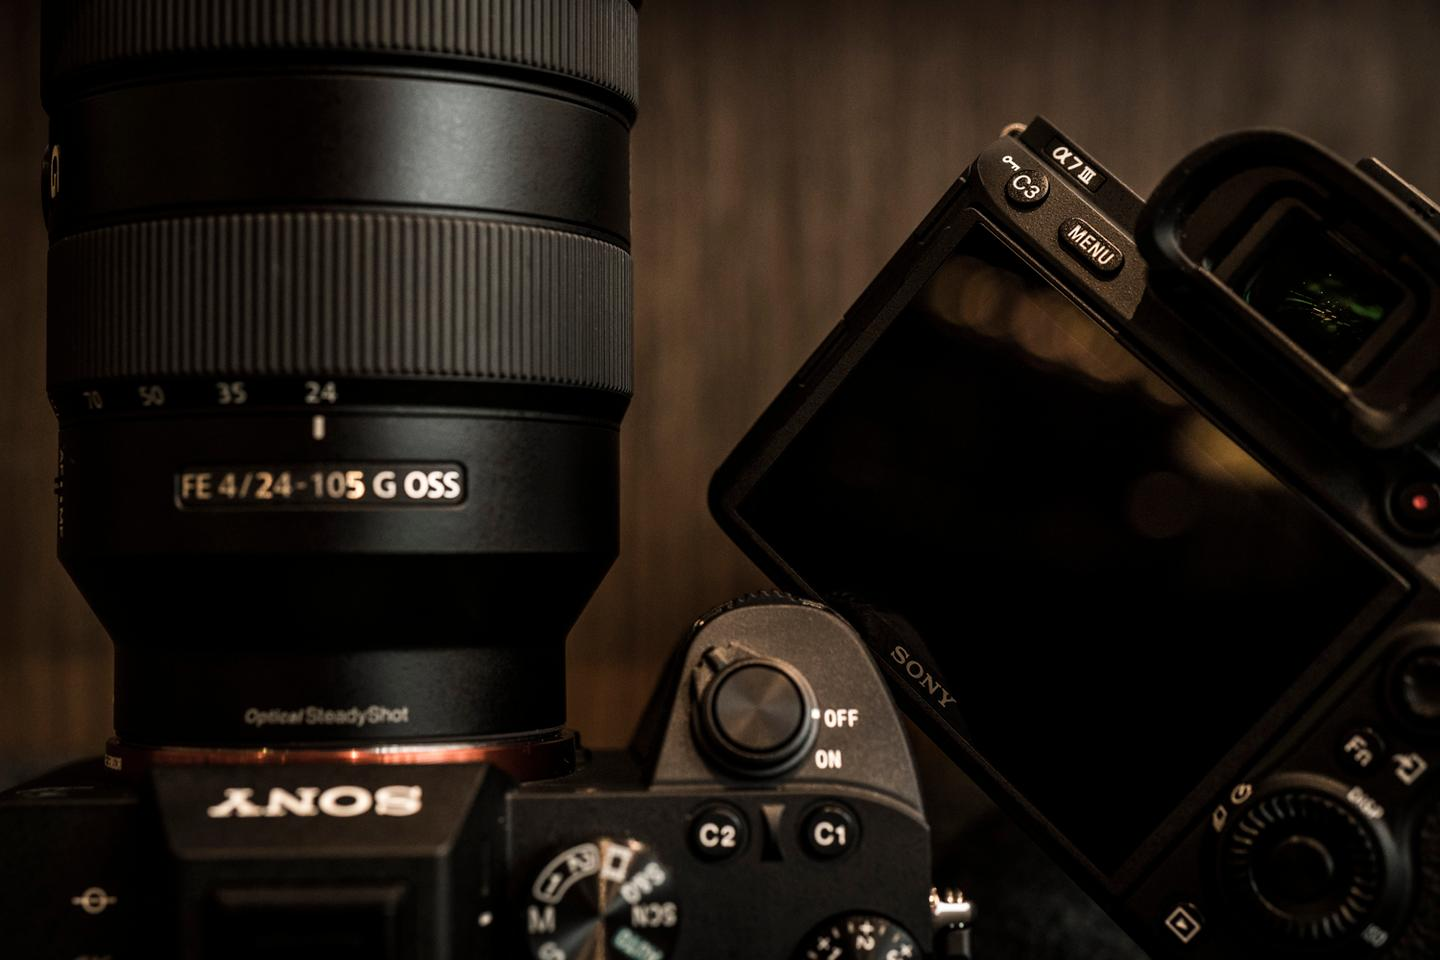 The Sony α7 IIIsports 693 phase detection points that cover 93 percent of the image area and 425 contrast detection points